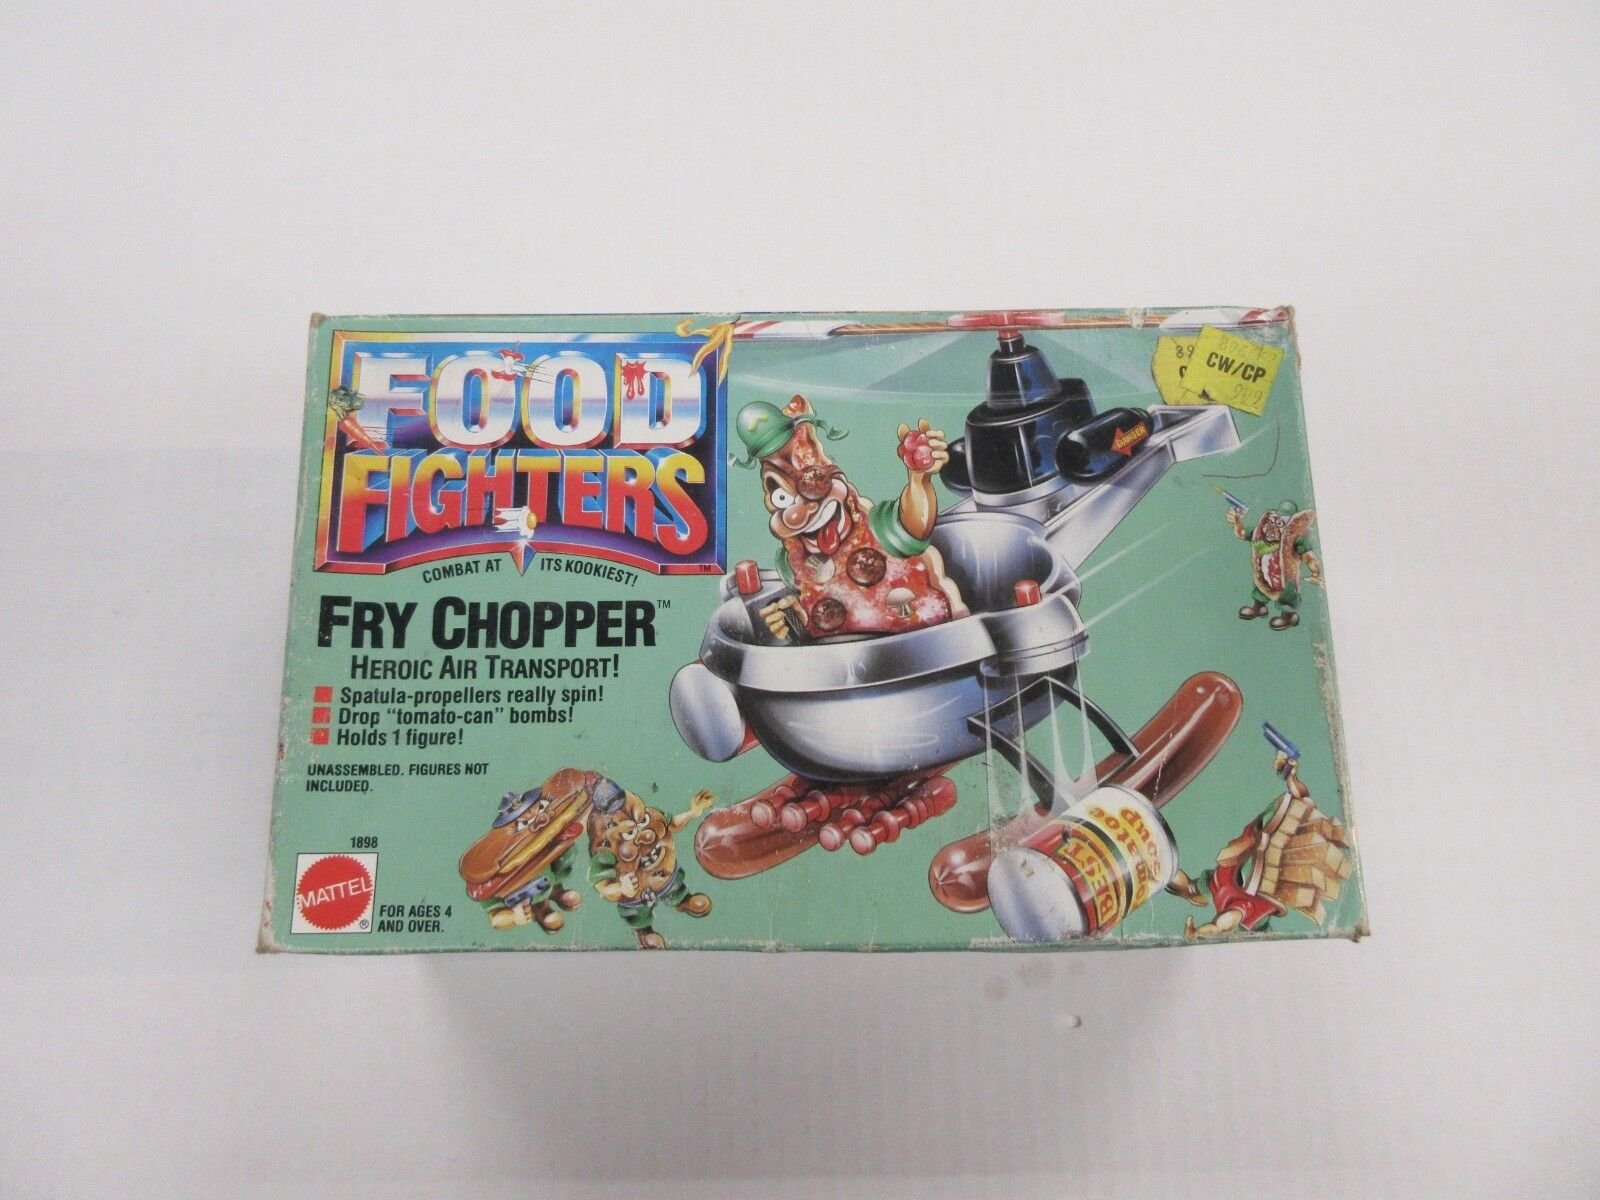 1988 MATTEL FOOD FIGHTERS FRY CHOPPER FIGURE VEHICLE SEALED NIB